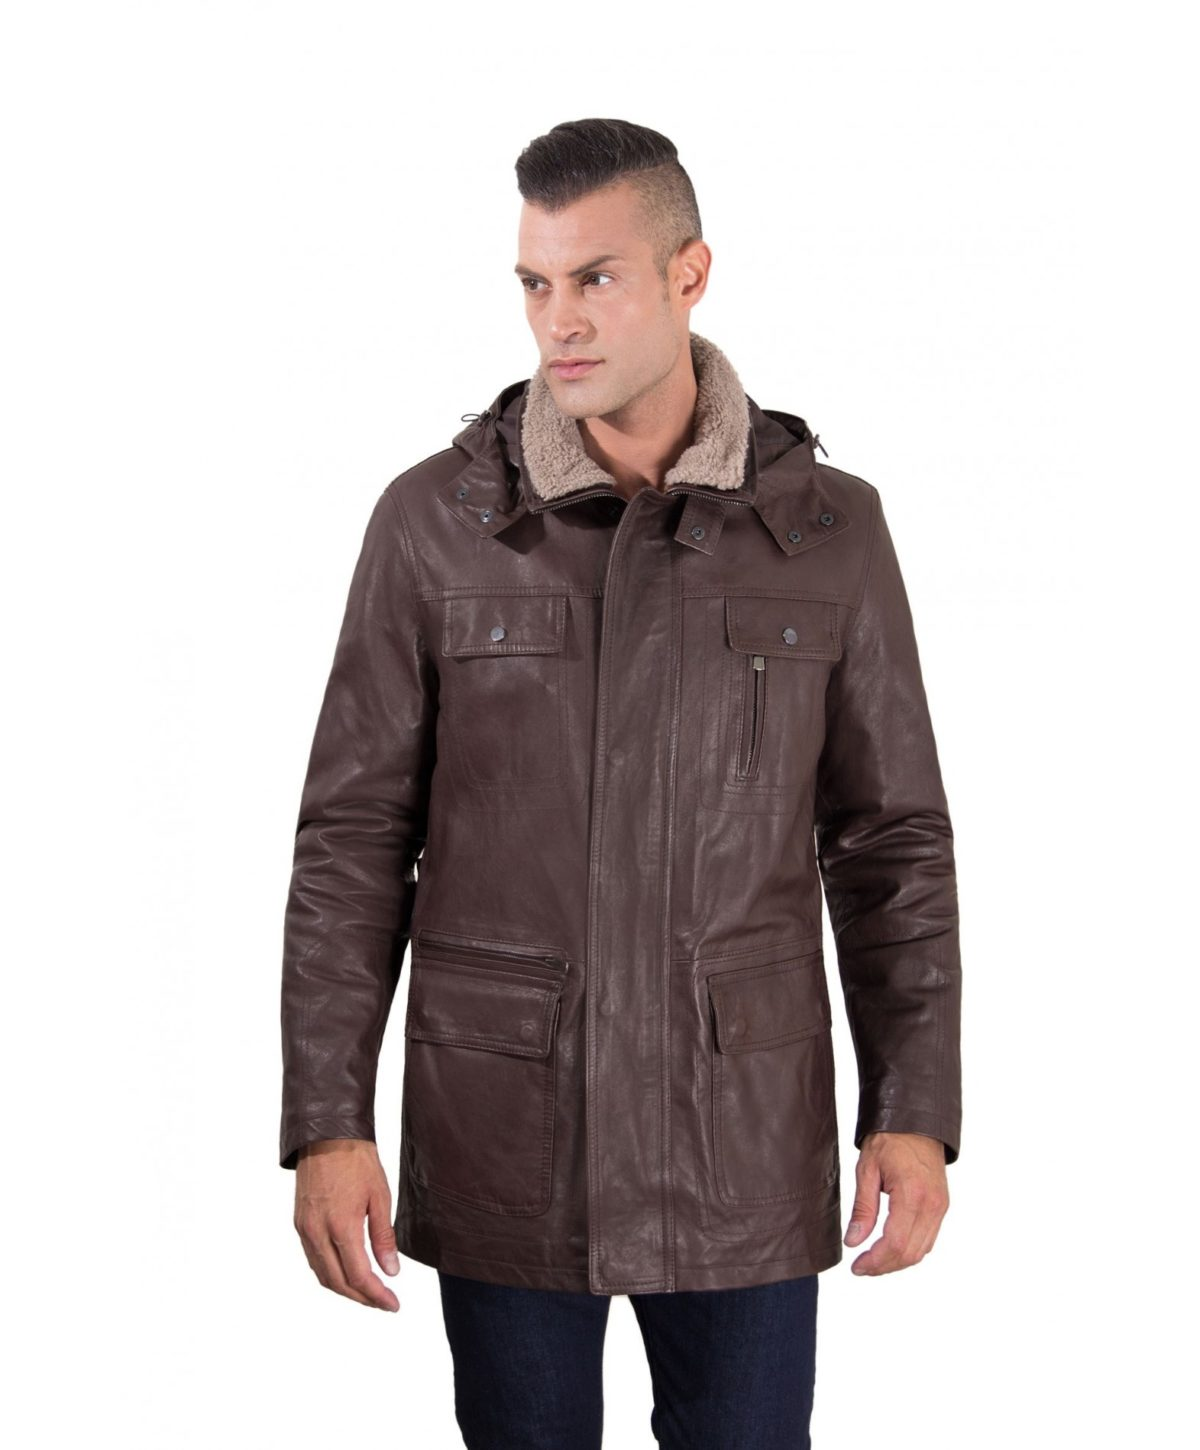 men-s-long-leather-coat-genuine-soft-leather-5-pockets-detachable-hood-buttons-and-zip-closing-dark-brown-color-mod-vittorio